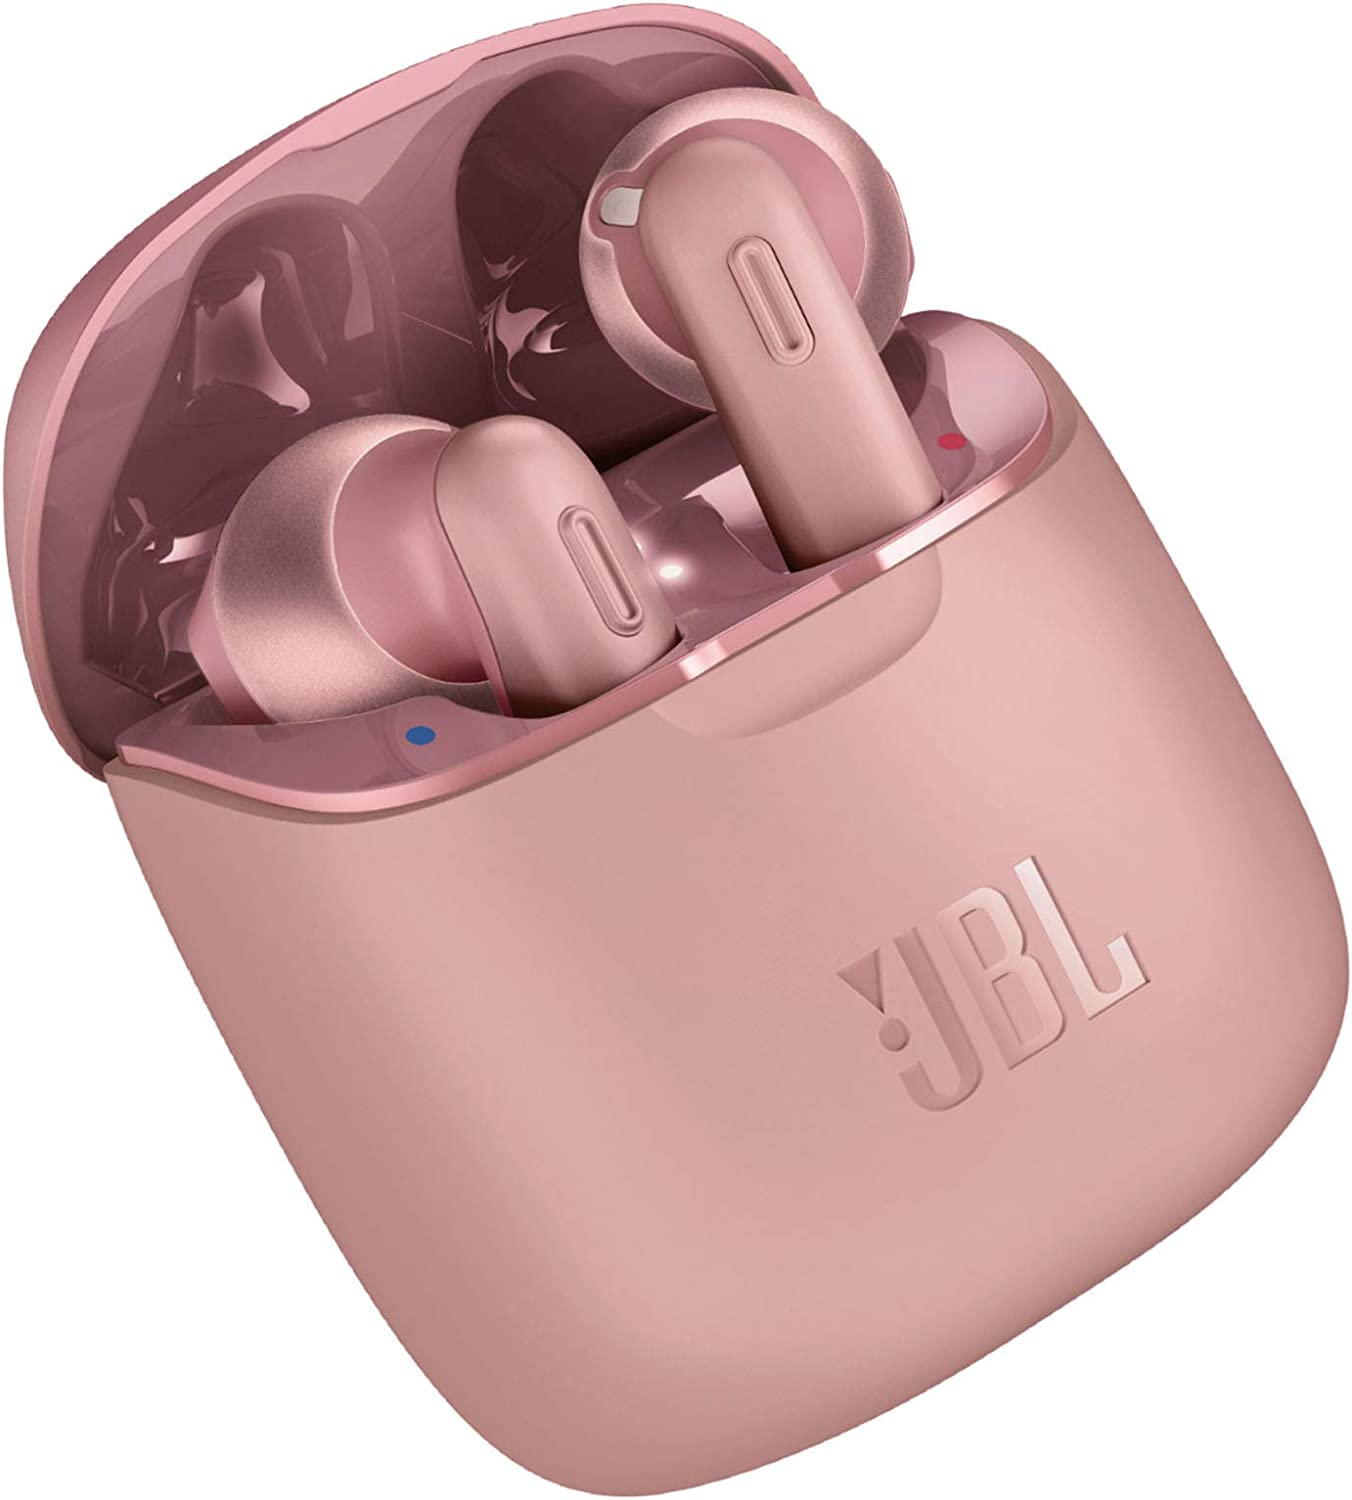 Jbl Tune 220tws True Wireless Bluetooth Earbuds With Amazon Co Uk Electronics